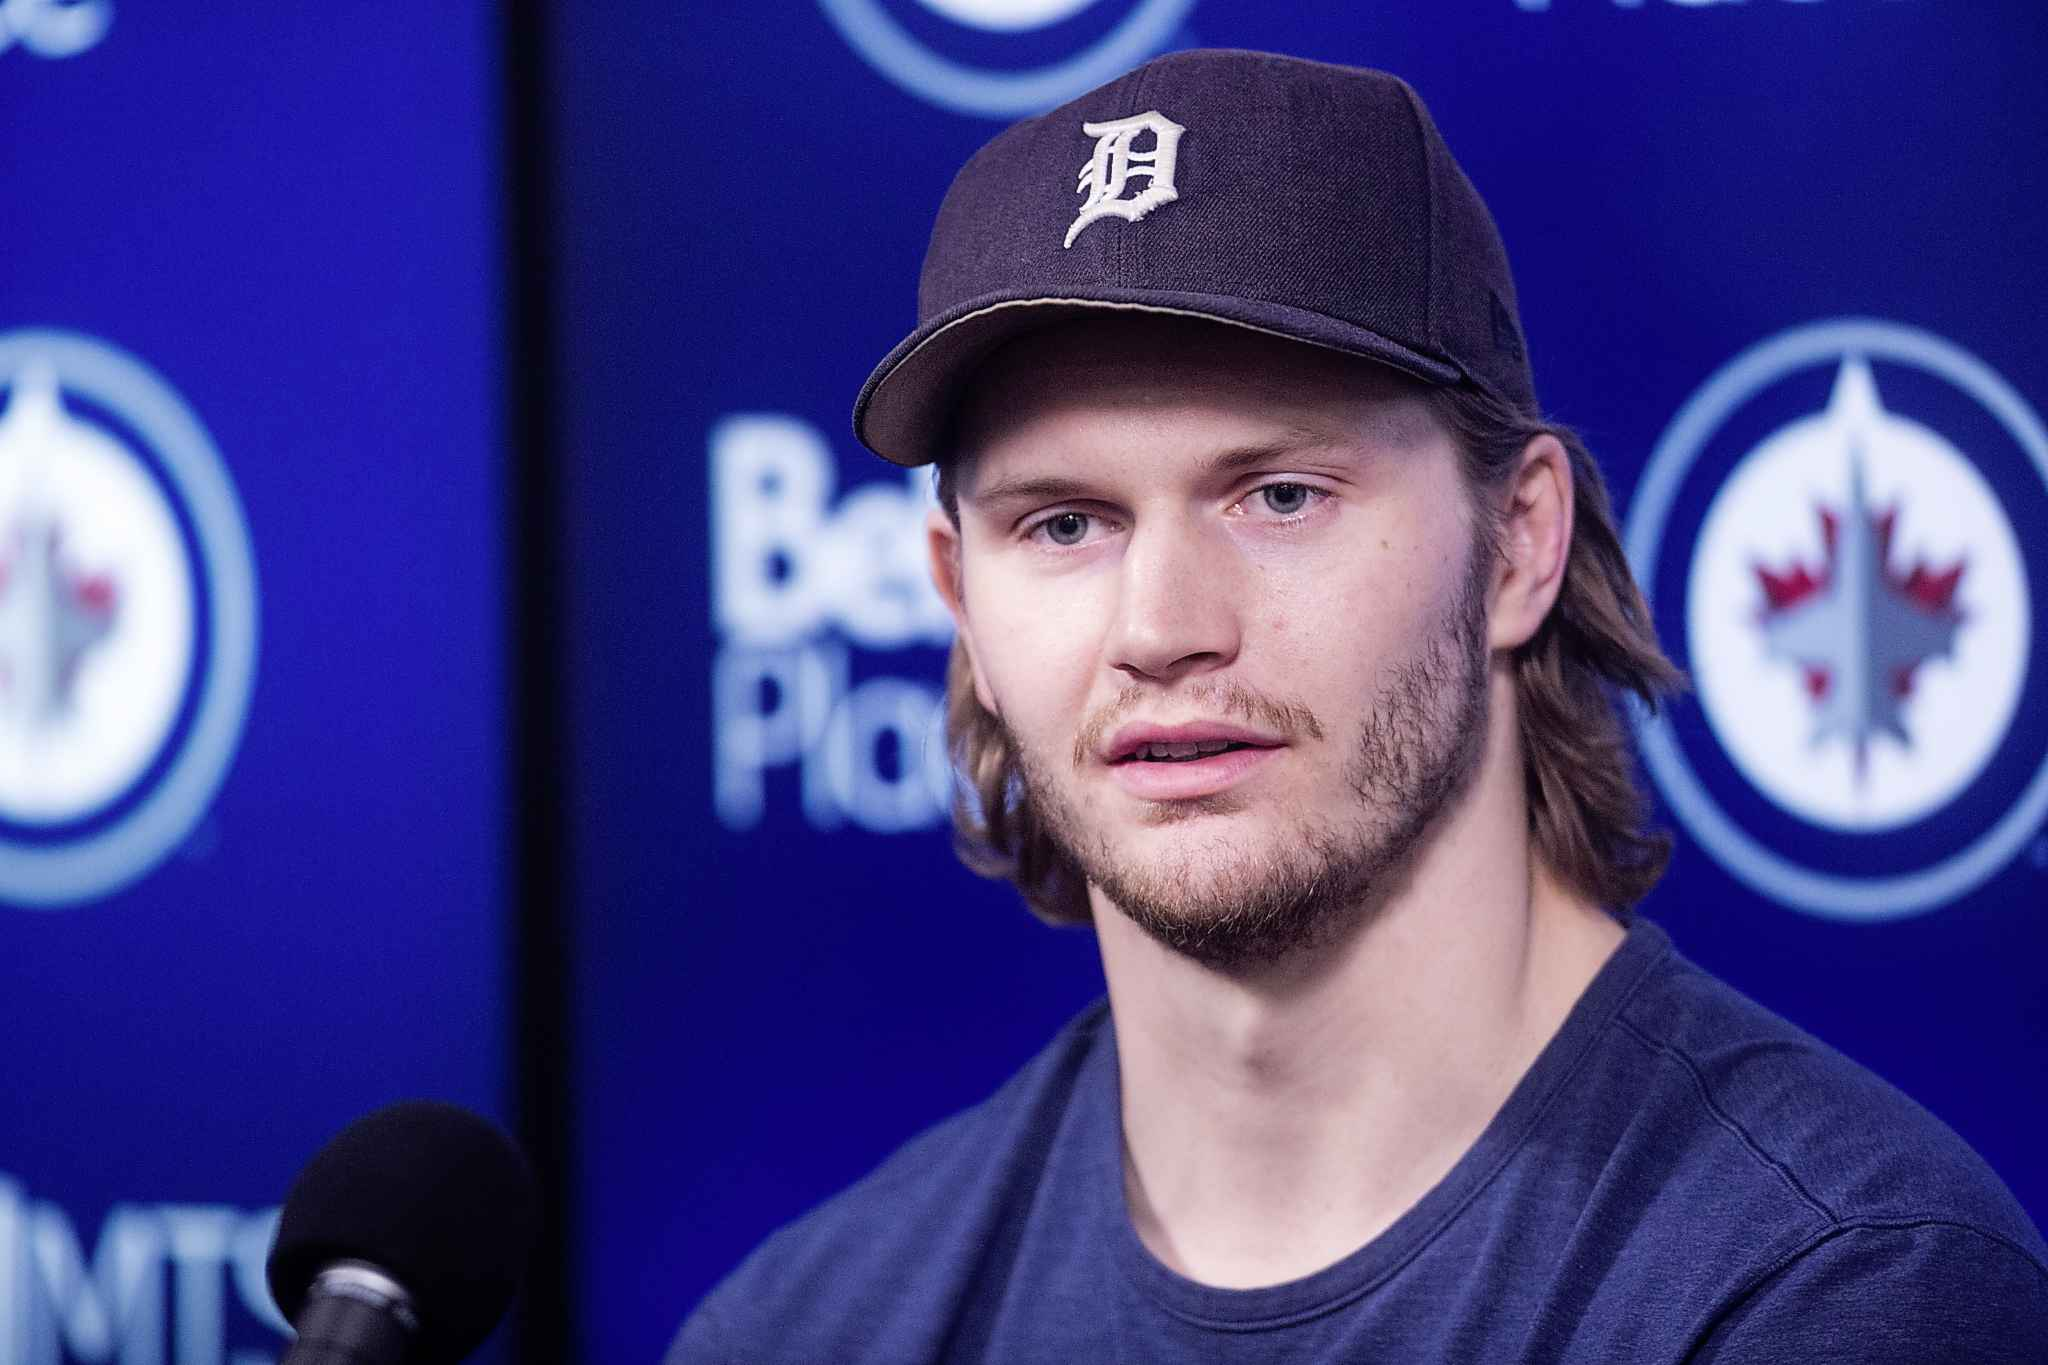 Been nice watchin' ya, Jake: Jets defenceman Jacob Trouba didn't try very hard to hide his desire to get out of the Winnipeg Jets dressing room, and with his final season as a restricted free agent ahead of him, he might just have the most leverage available to make that happen. (Mikaela MacKenzie / Winnipeg Free Press files)